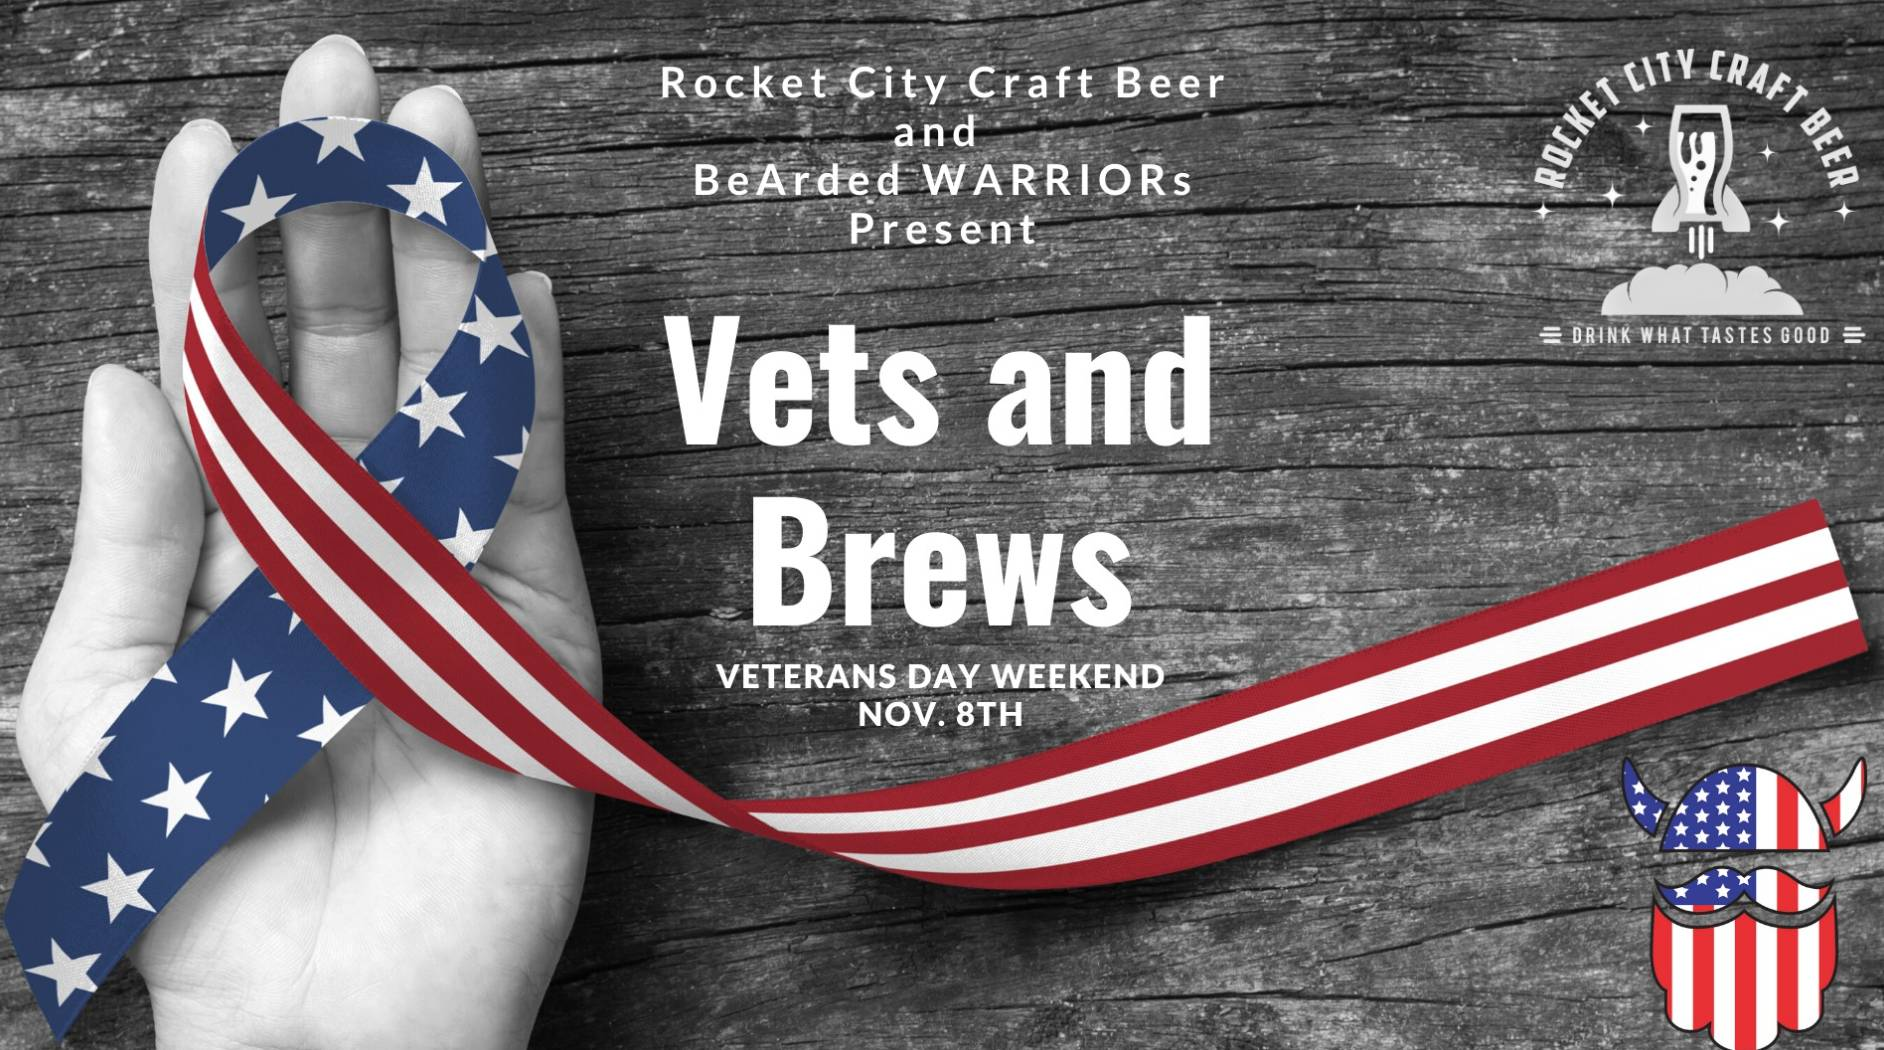 Vets and Brews with BeArded WARRIORs